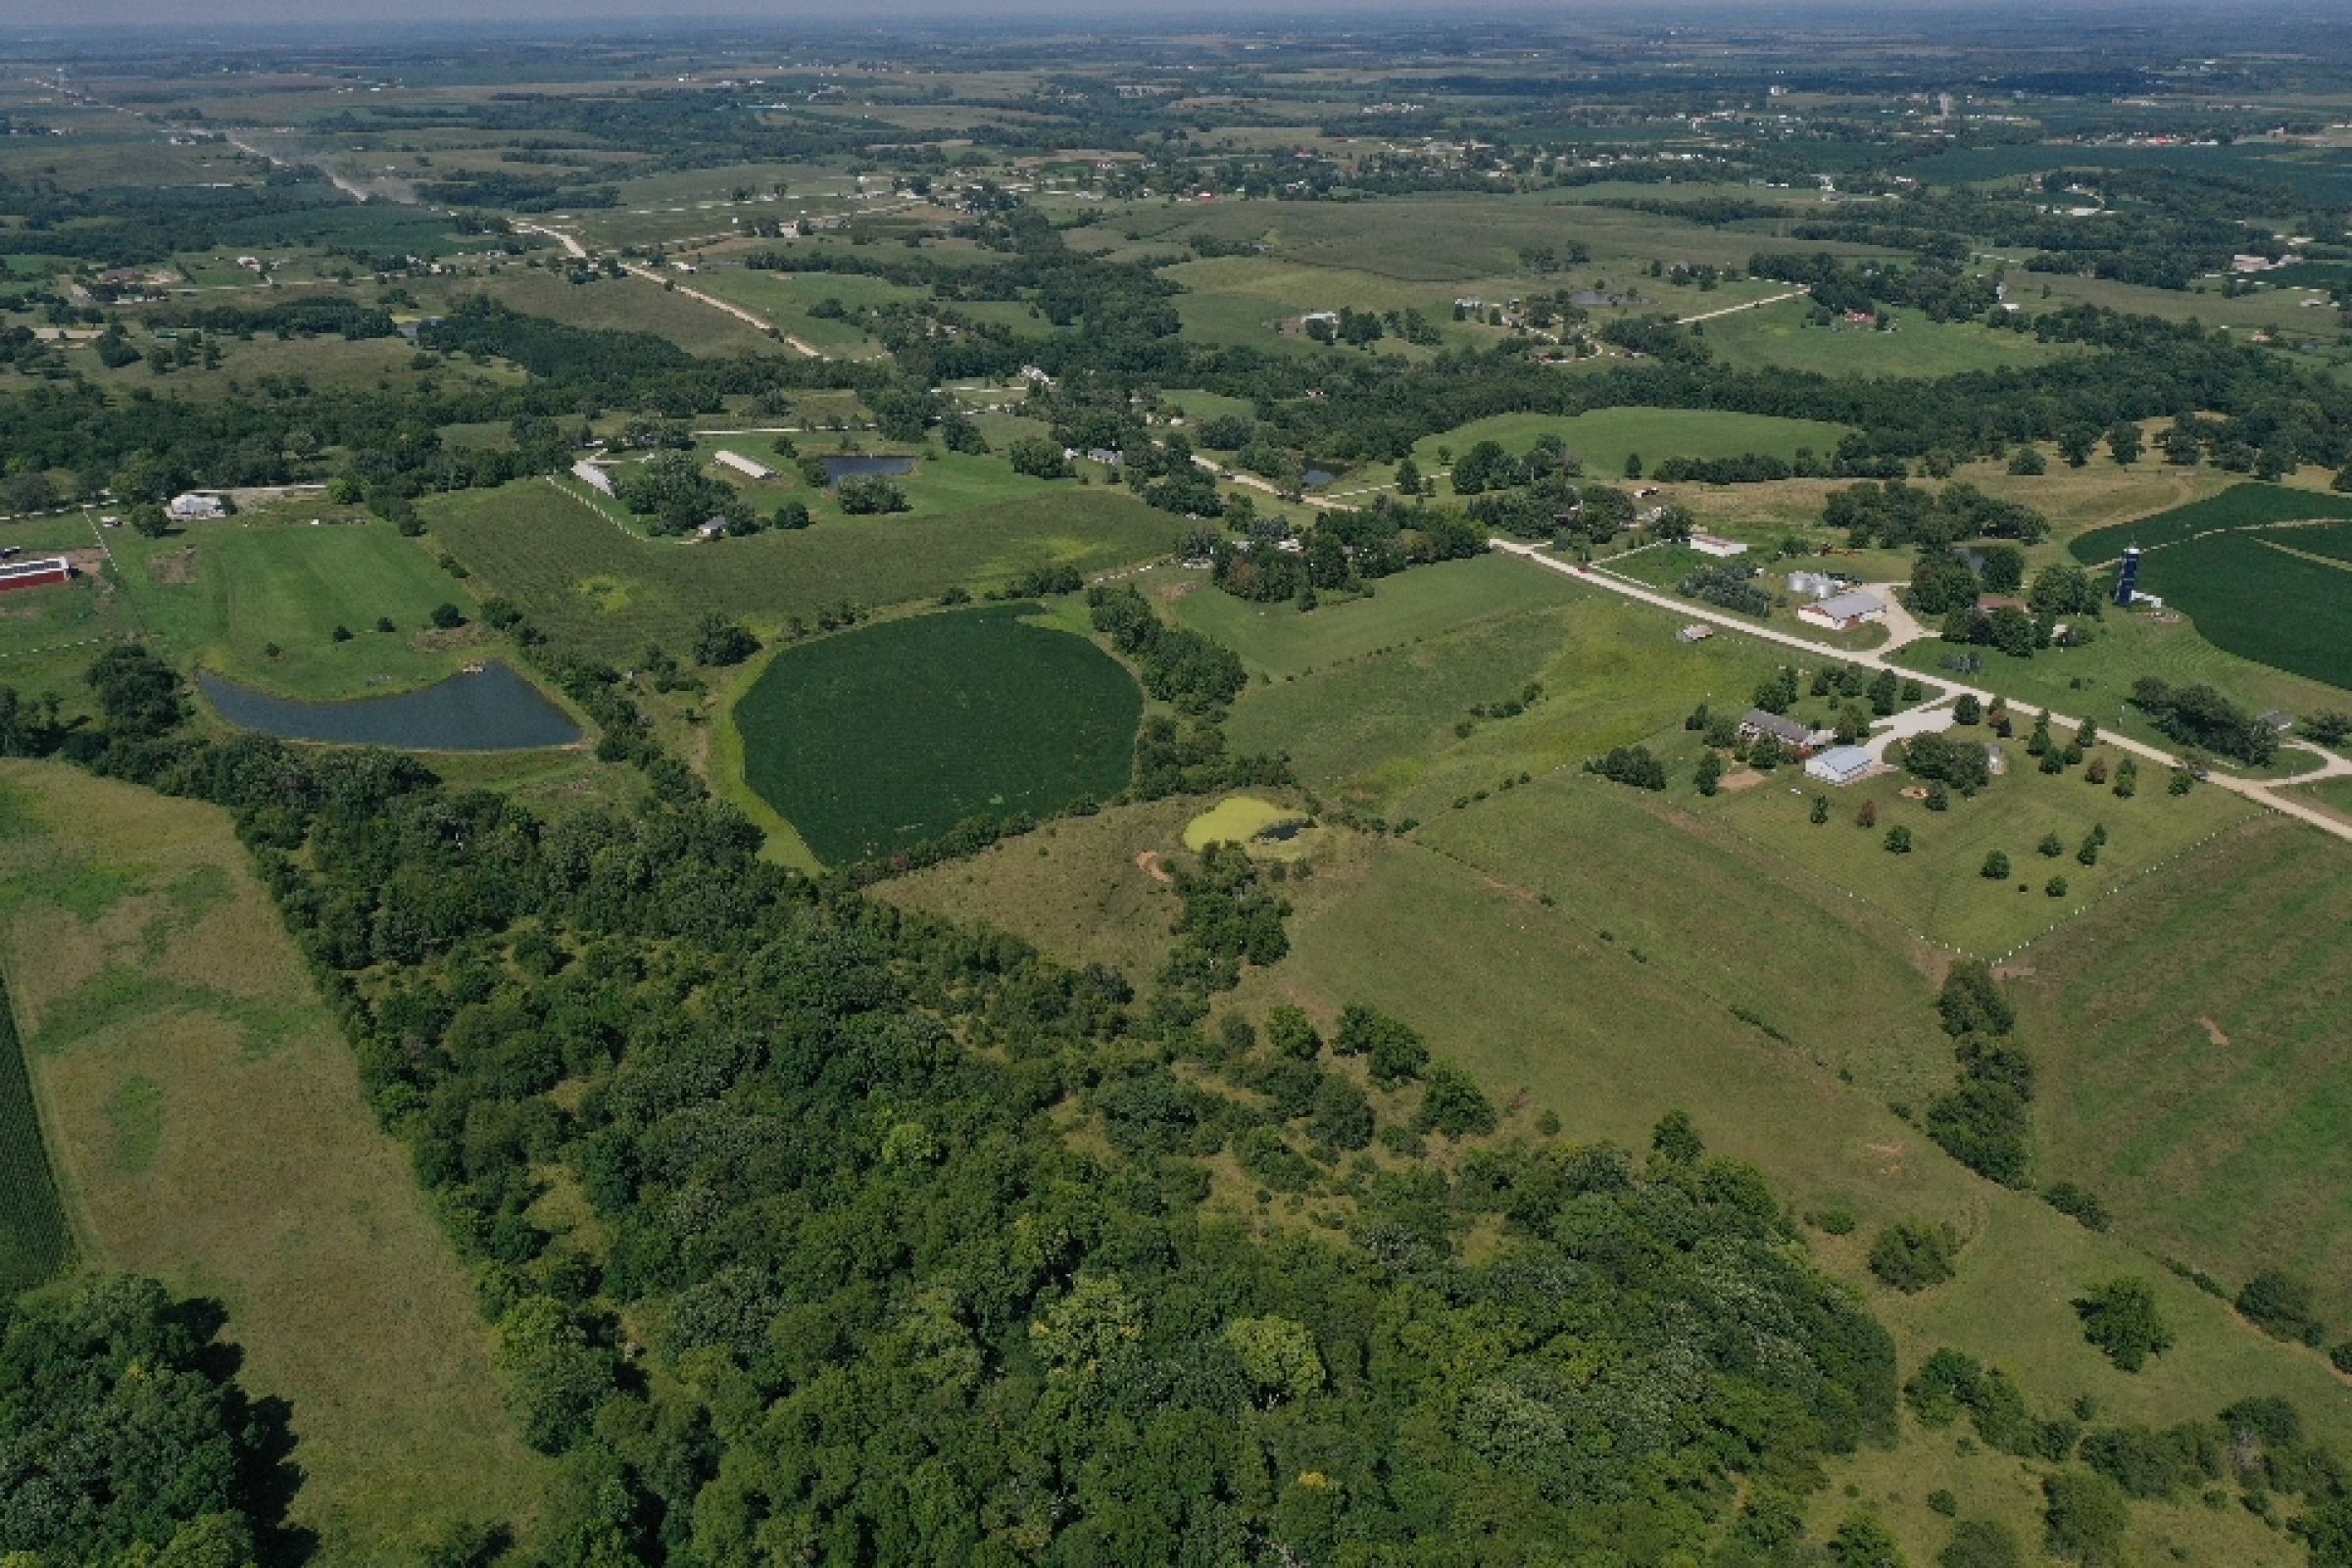 residential-land-warren-county-iowa-29-acres-listing-number-15120-7-2020-08-20-195123.jpg